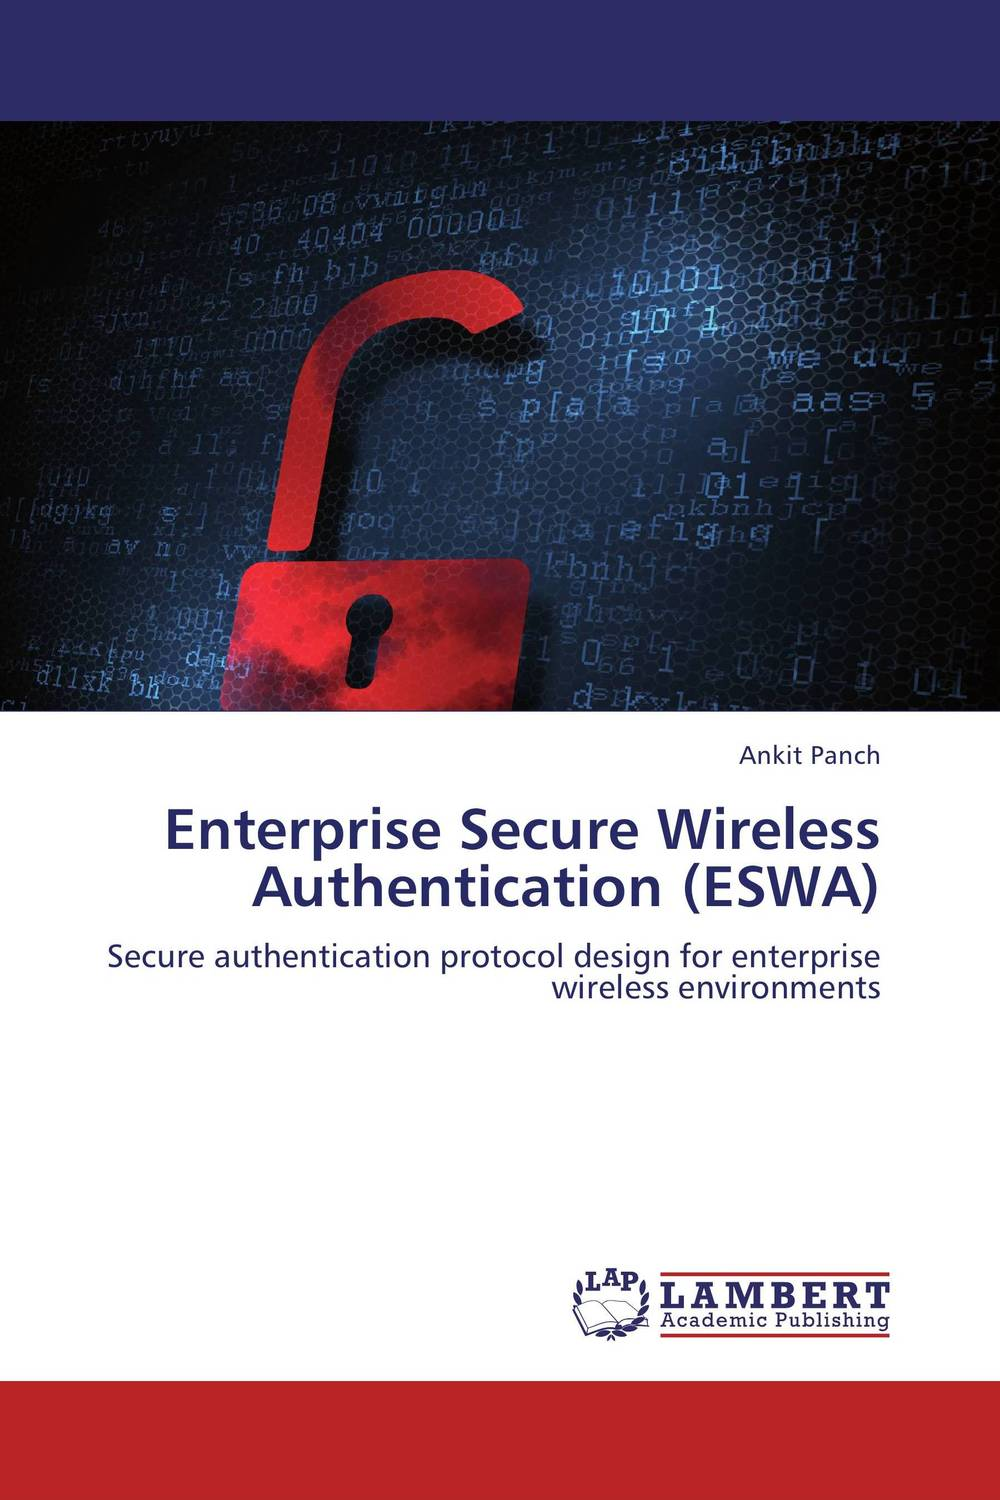 Enterprise Secure Wireless Authentication (ESWA) belousov a security features of banknotes and other documents methods of authentication manual денежные билеты бланки ценных бумаг и документов